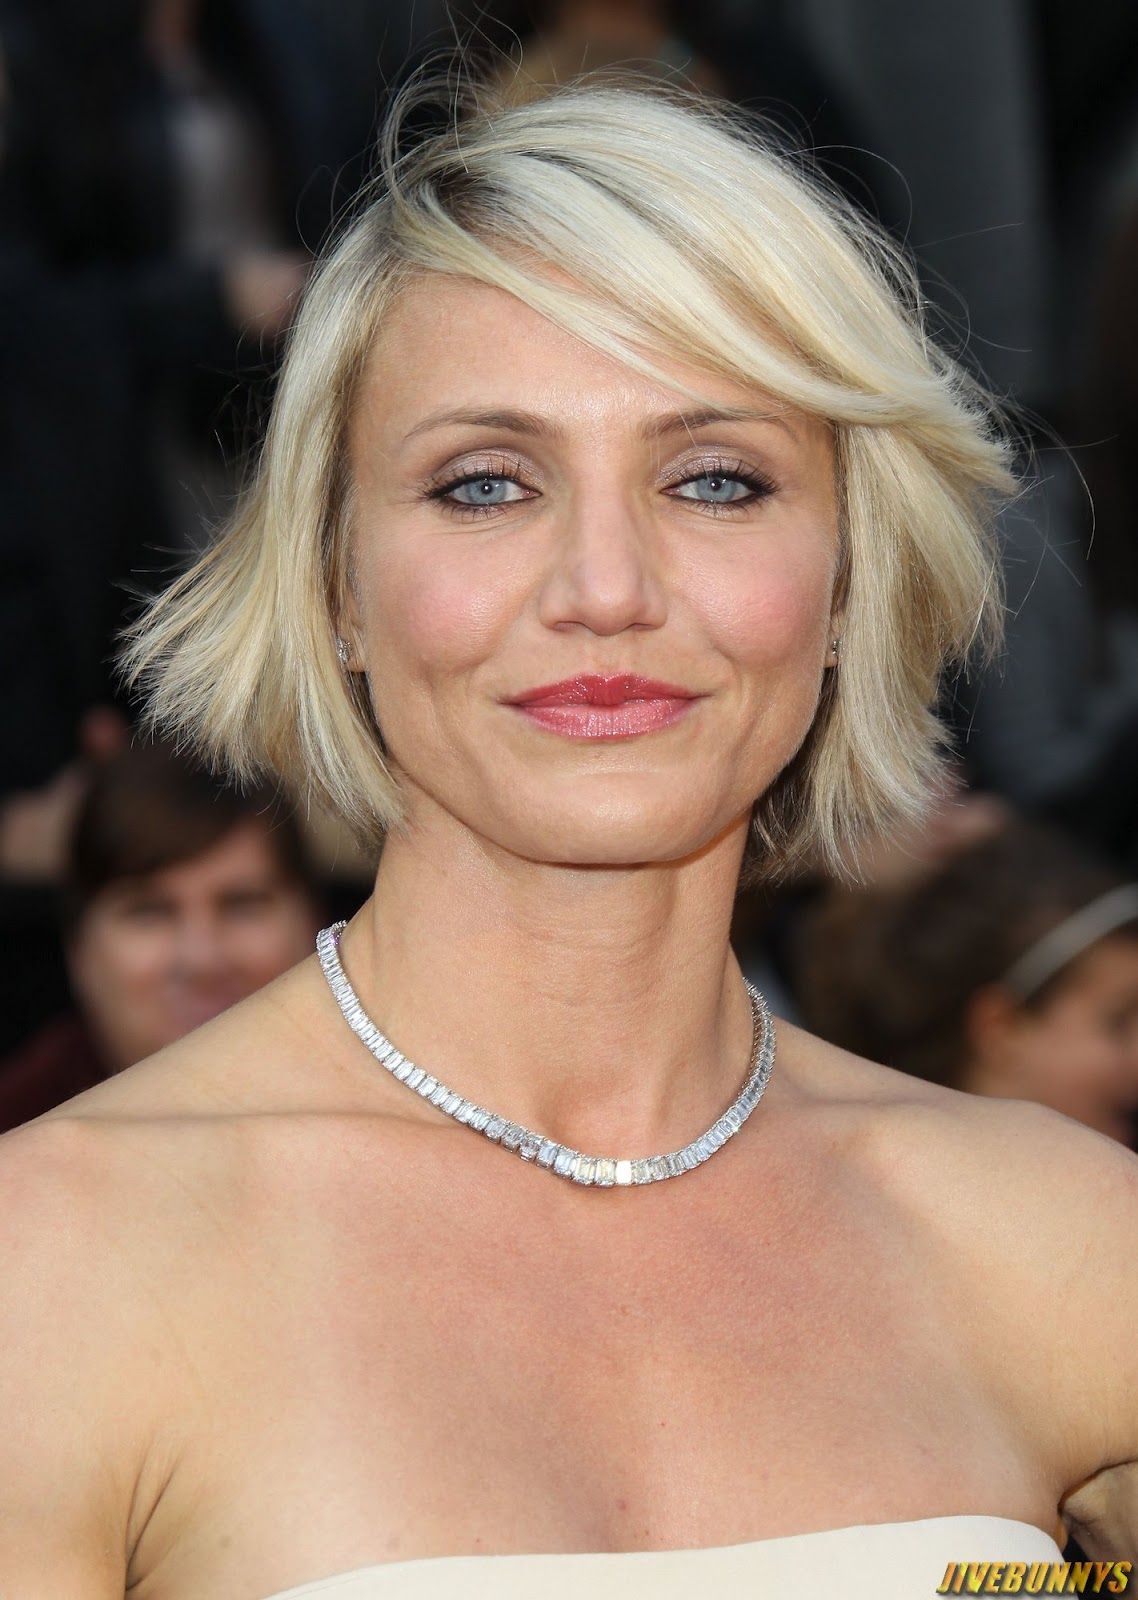 Cameron diaz hot actress photos and pictures gallery 3